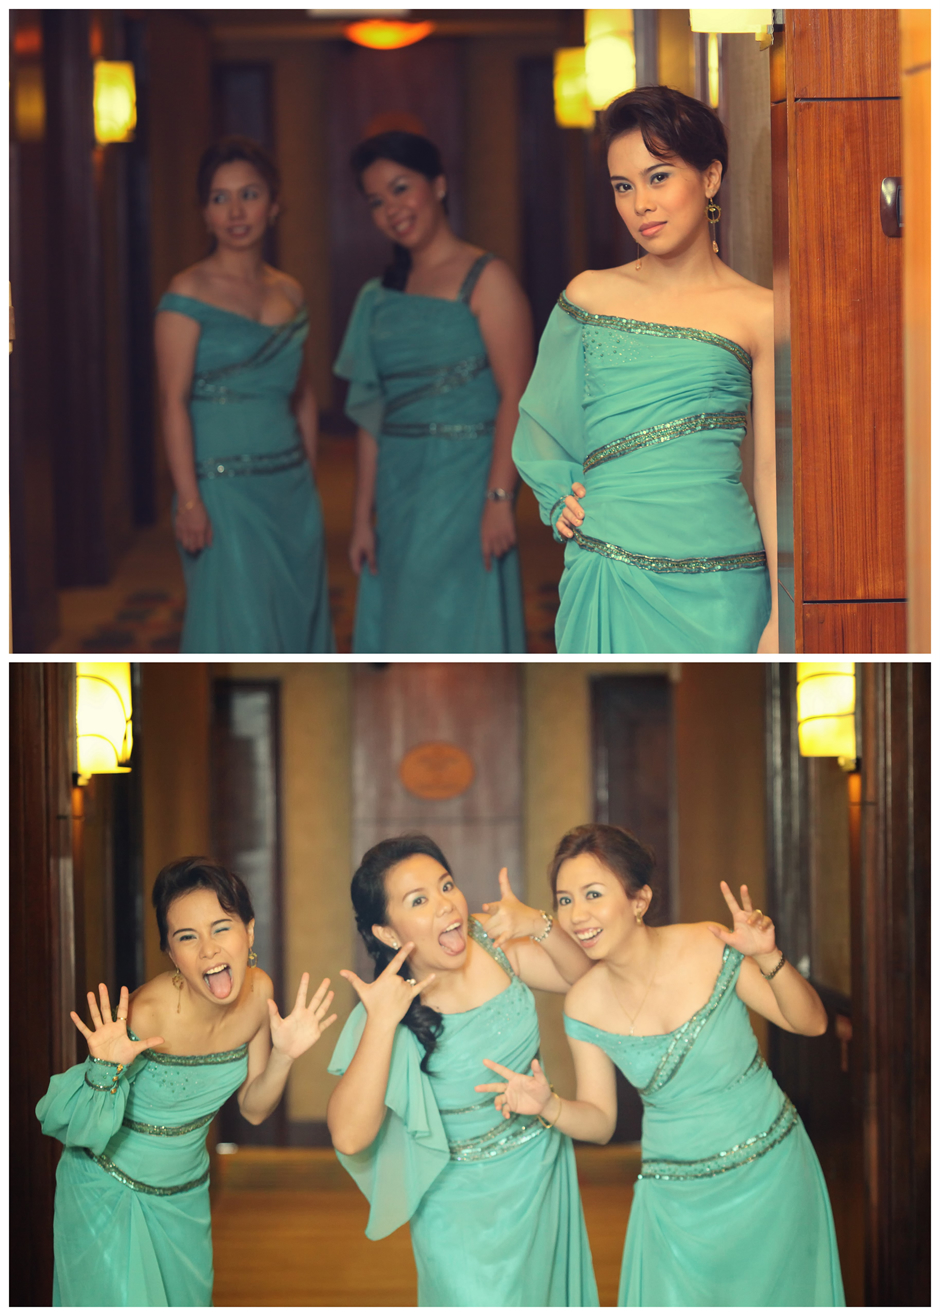 Cebu Wedding Photography, Cebu Wedding Photographer, Cebu Weddings